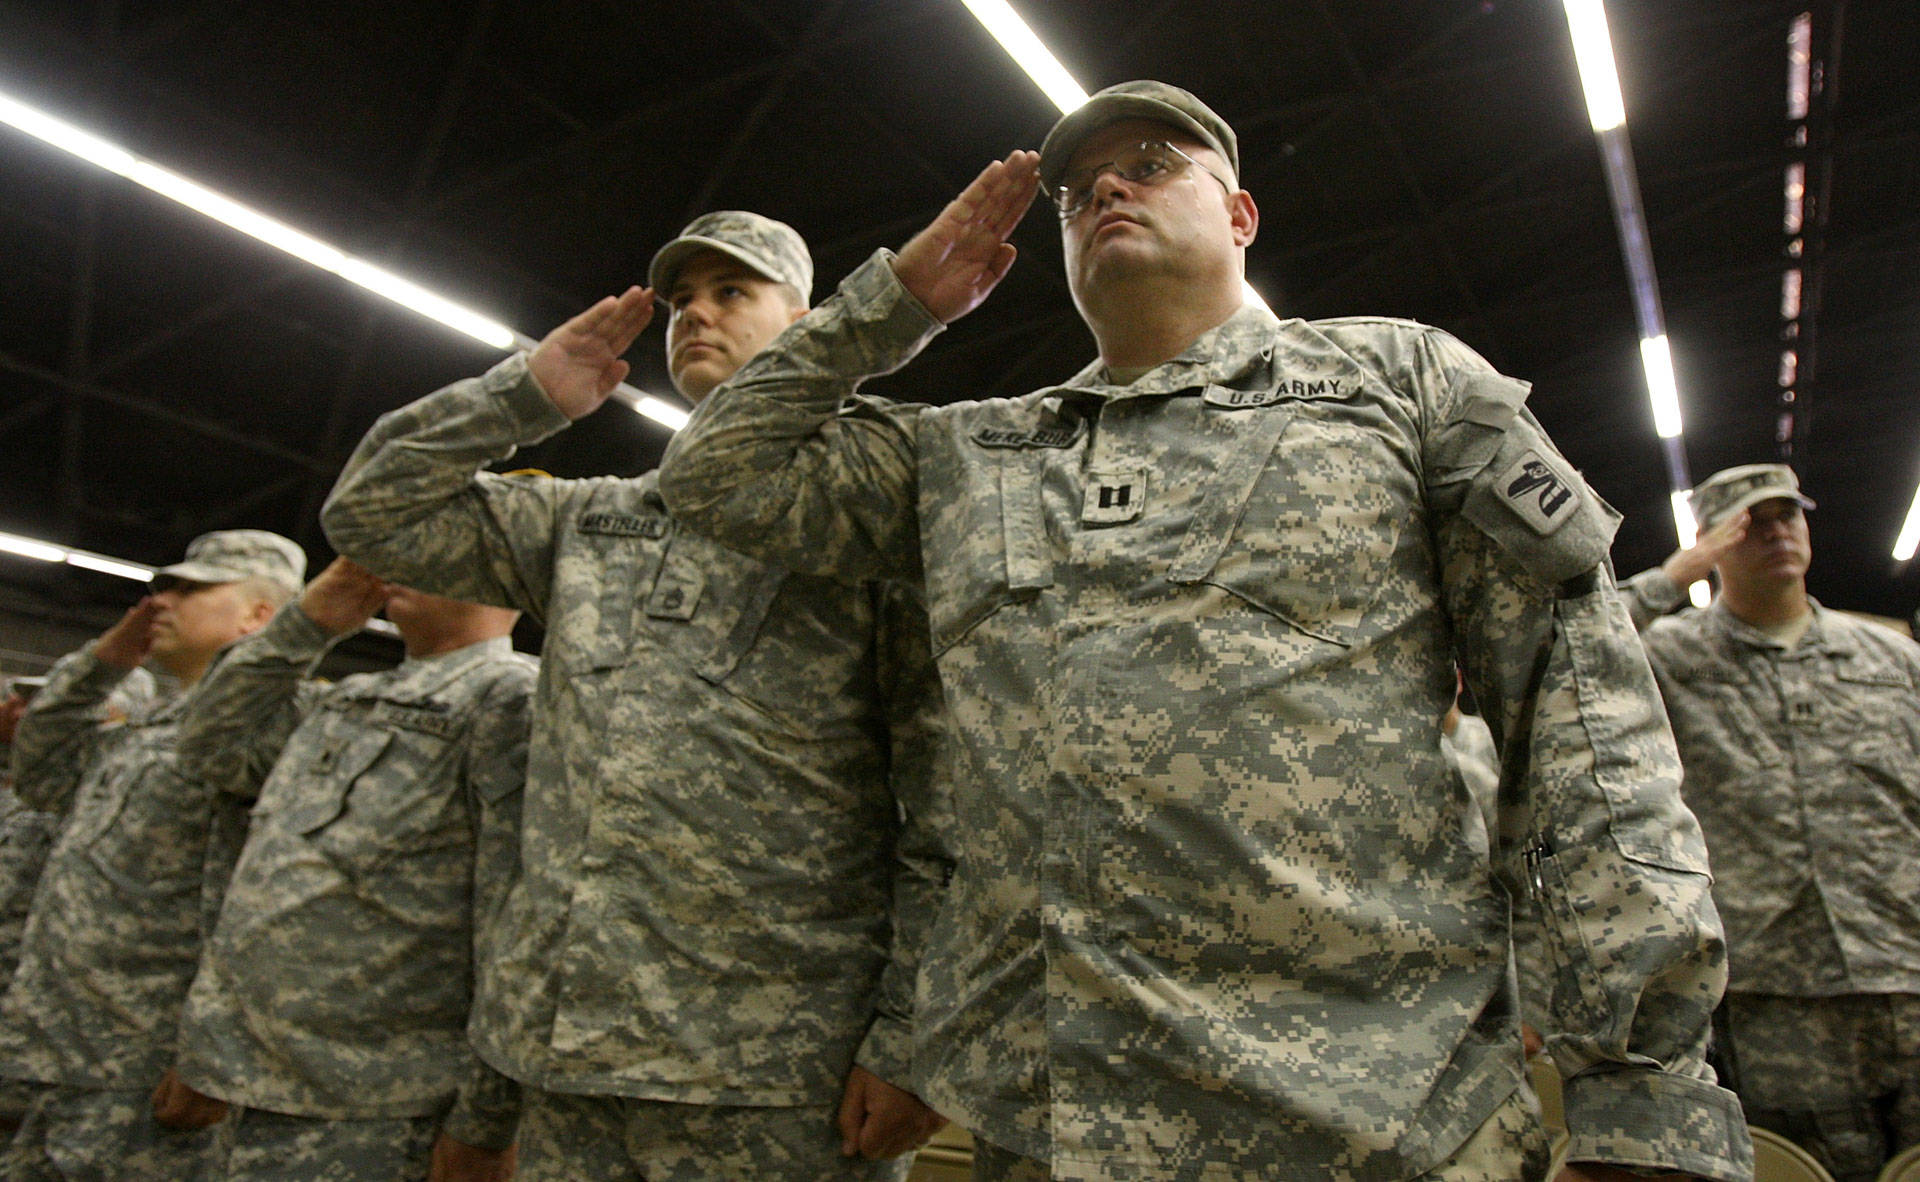 Soldiers attend a farewell ceremony for about 850 California National Guardsmen from the 1st Battalion on Aug. 22, 2008, in San Bernardino. The soldiers were on their way to a yearlong deployment to Iraq. David McNew/Getty Images